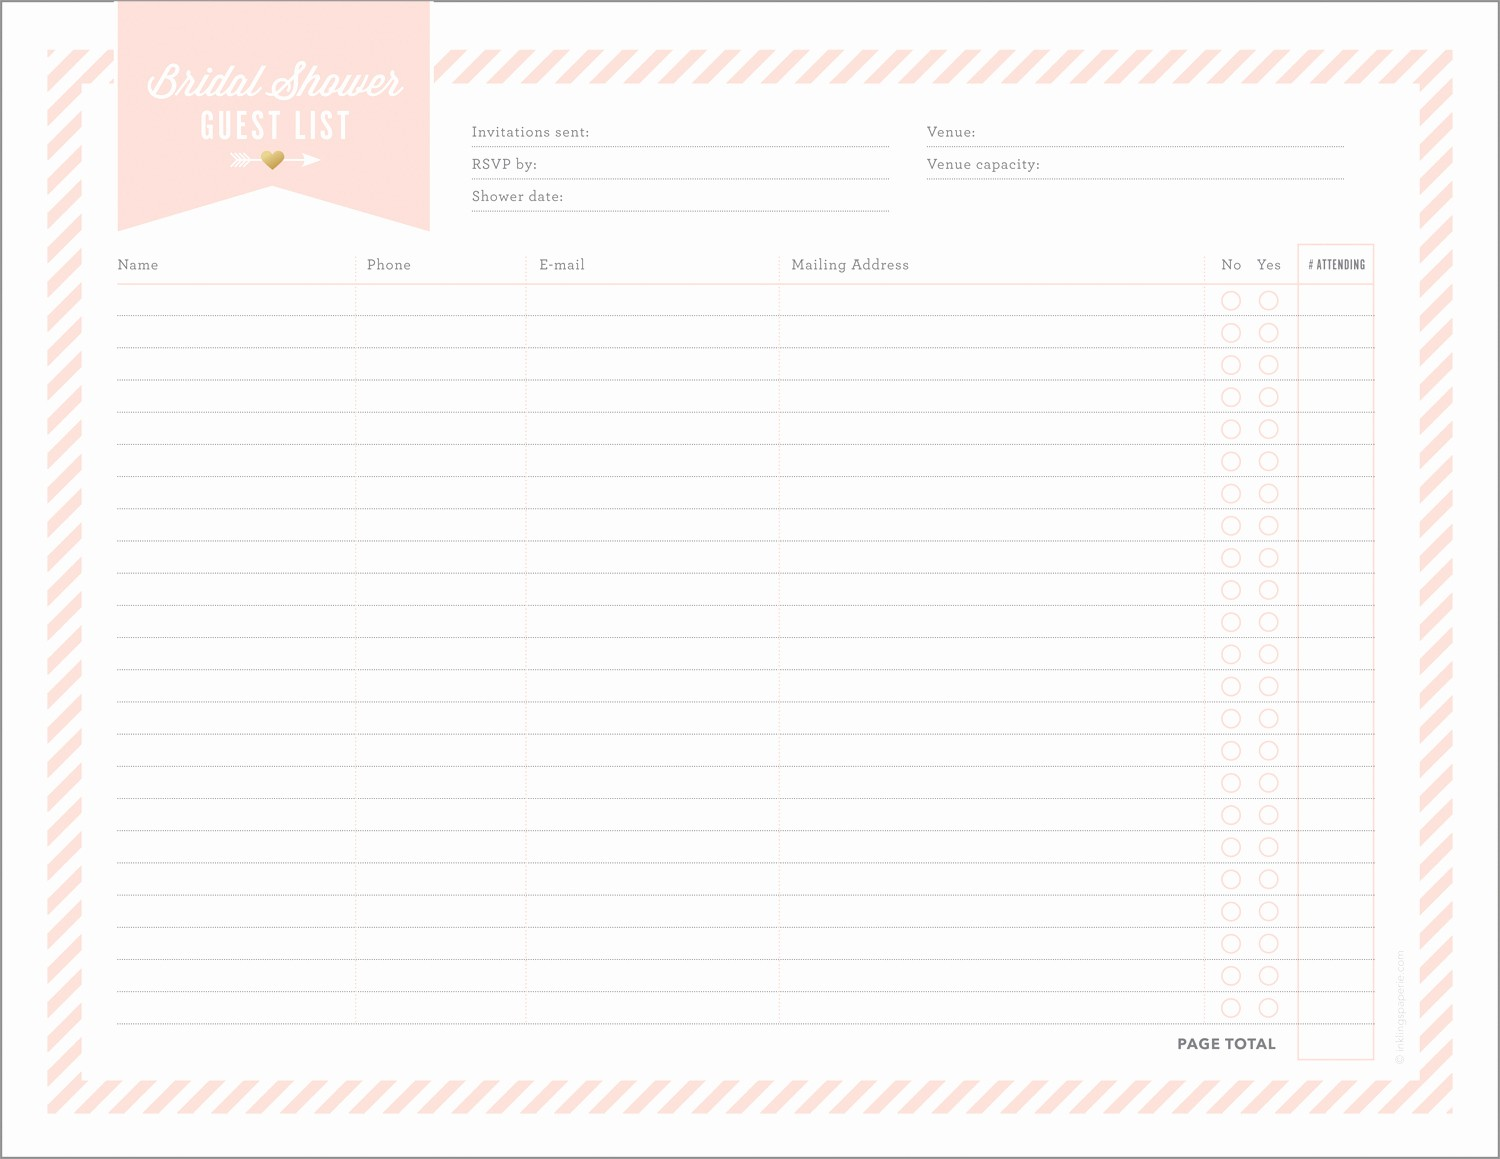 Bridal Shower Gift List Sheet Lovely Free Printables for Bridal Shower Planning